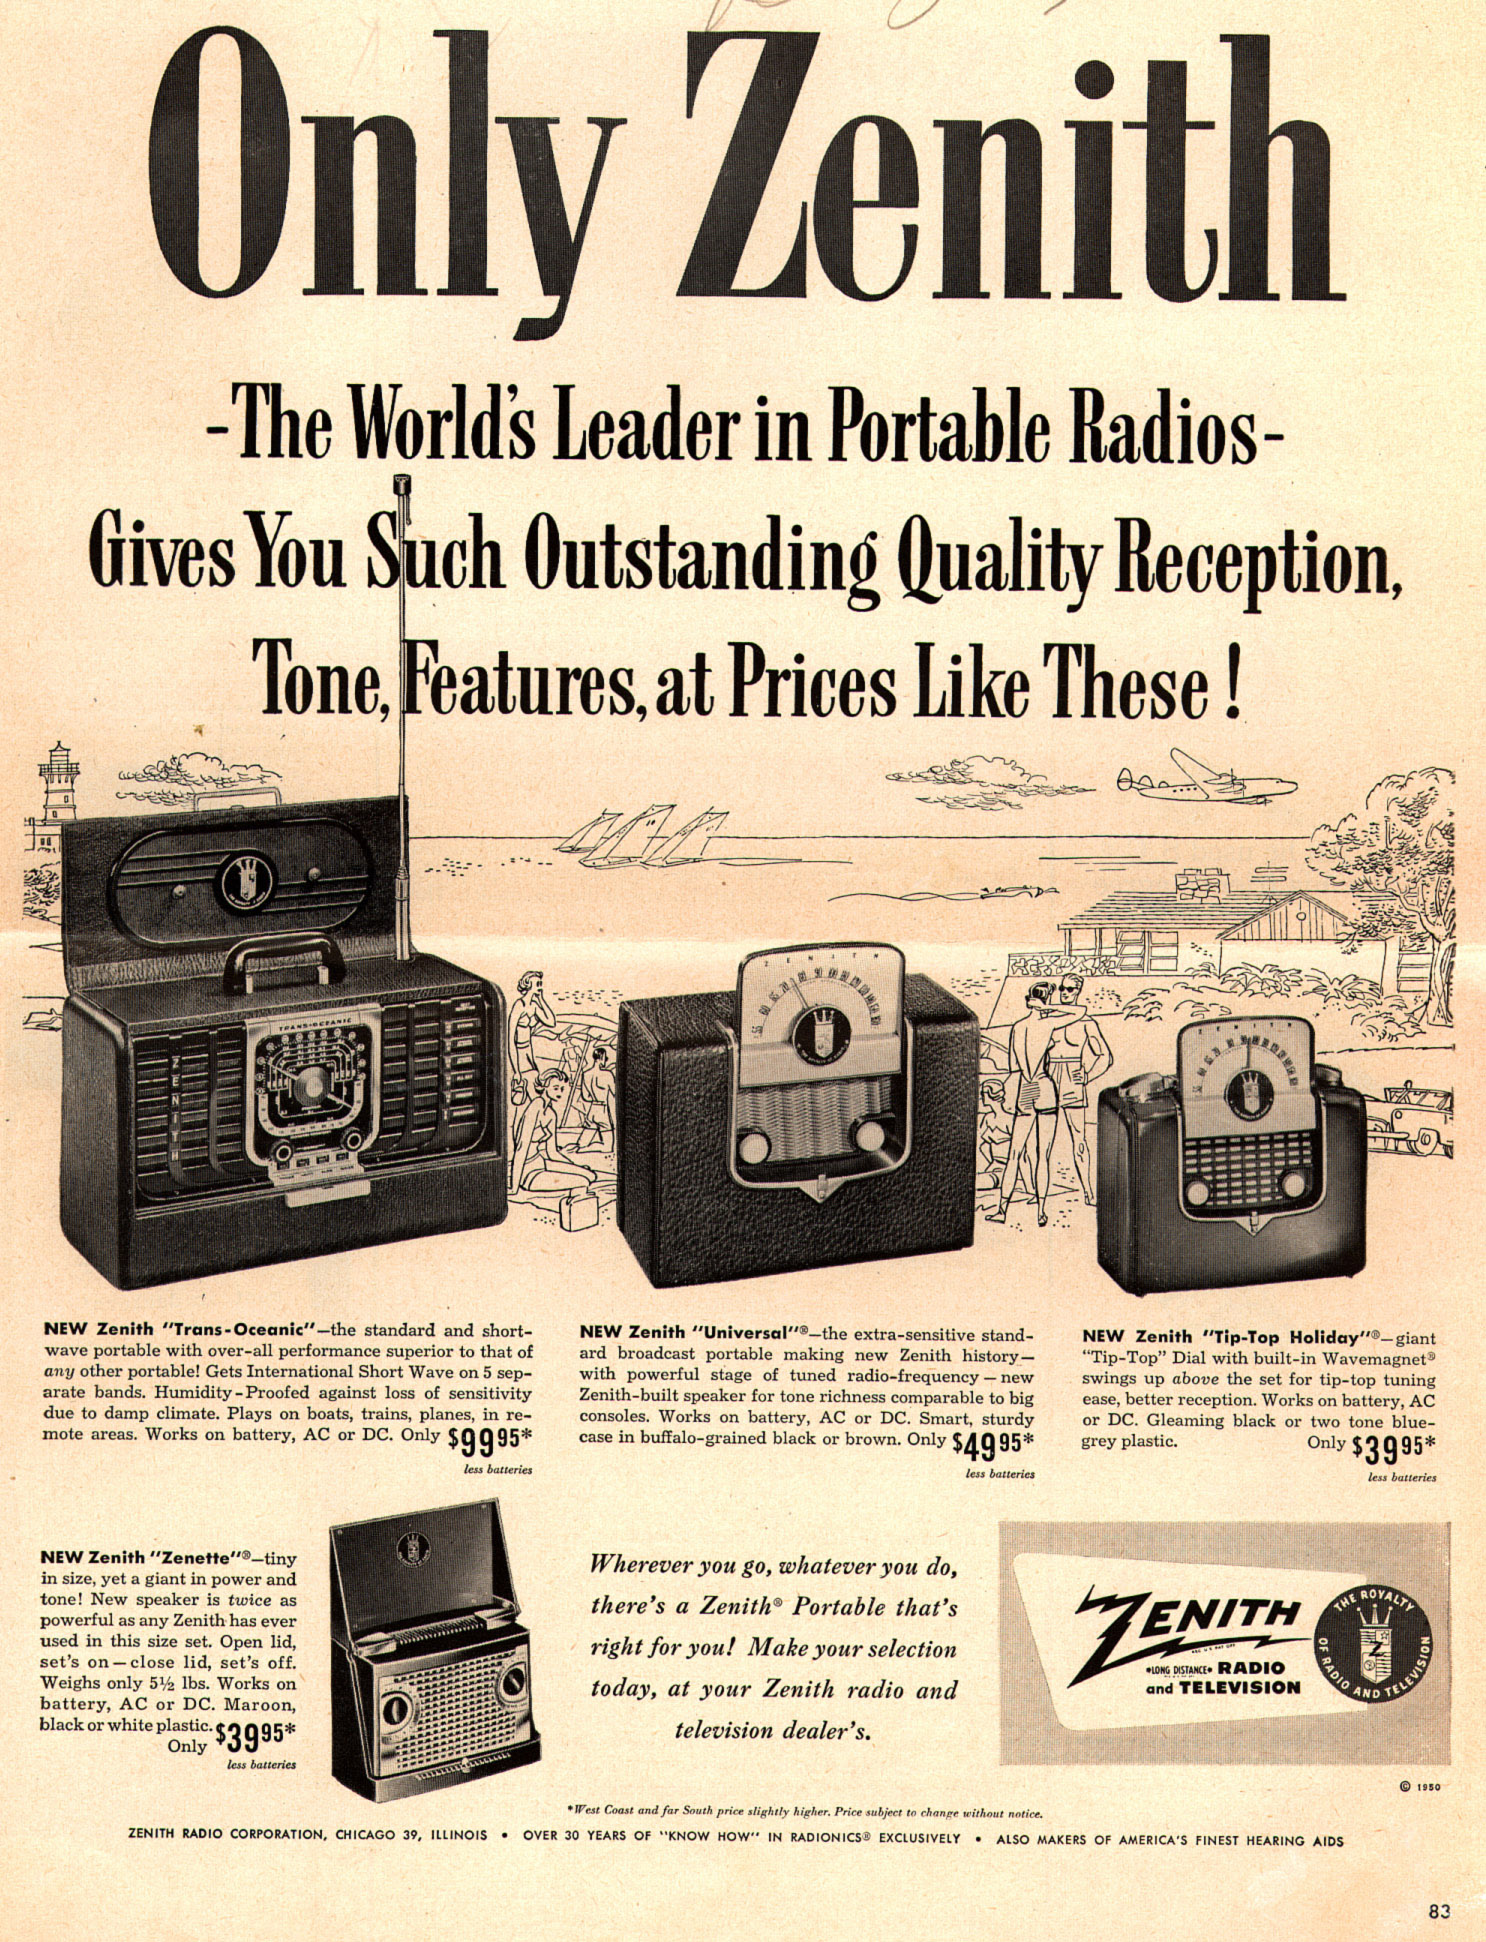 Only_Zenith_-_The_Worlds_Leader_in_Portable_Radios